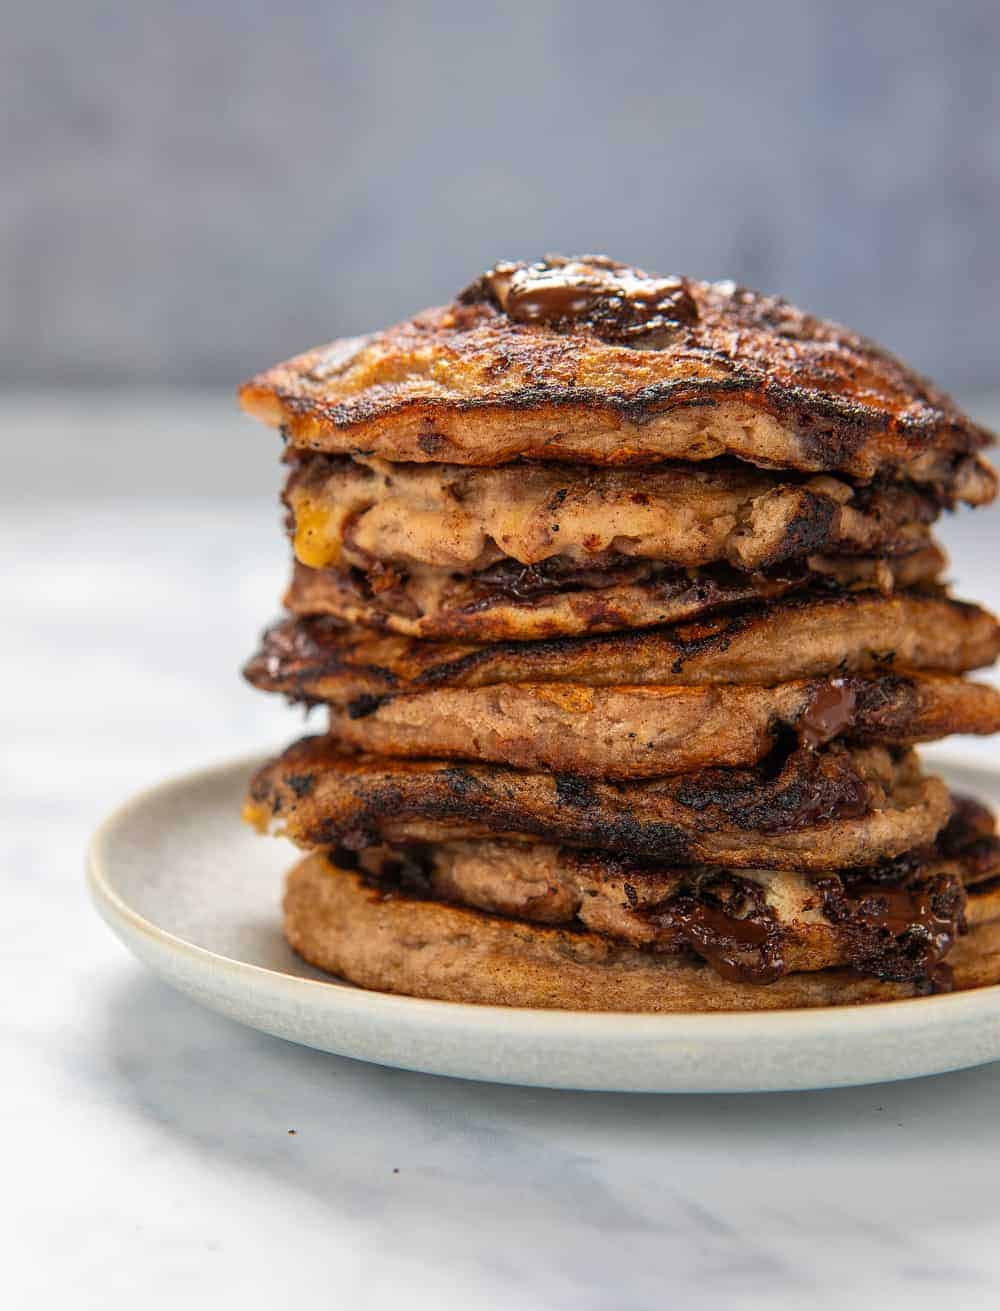 Banana Bread Pancakes - no maple